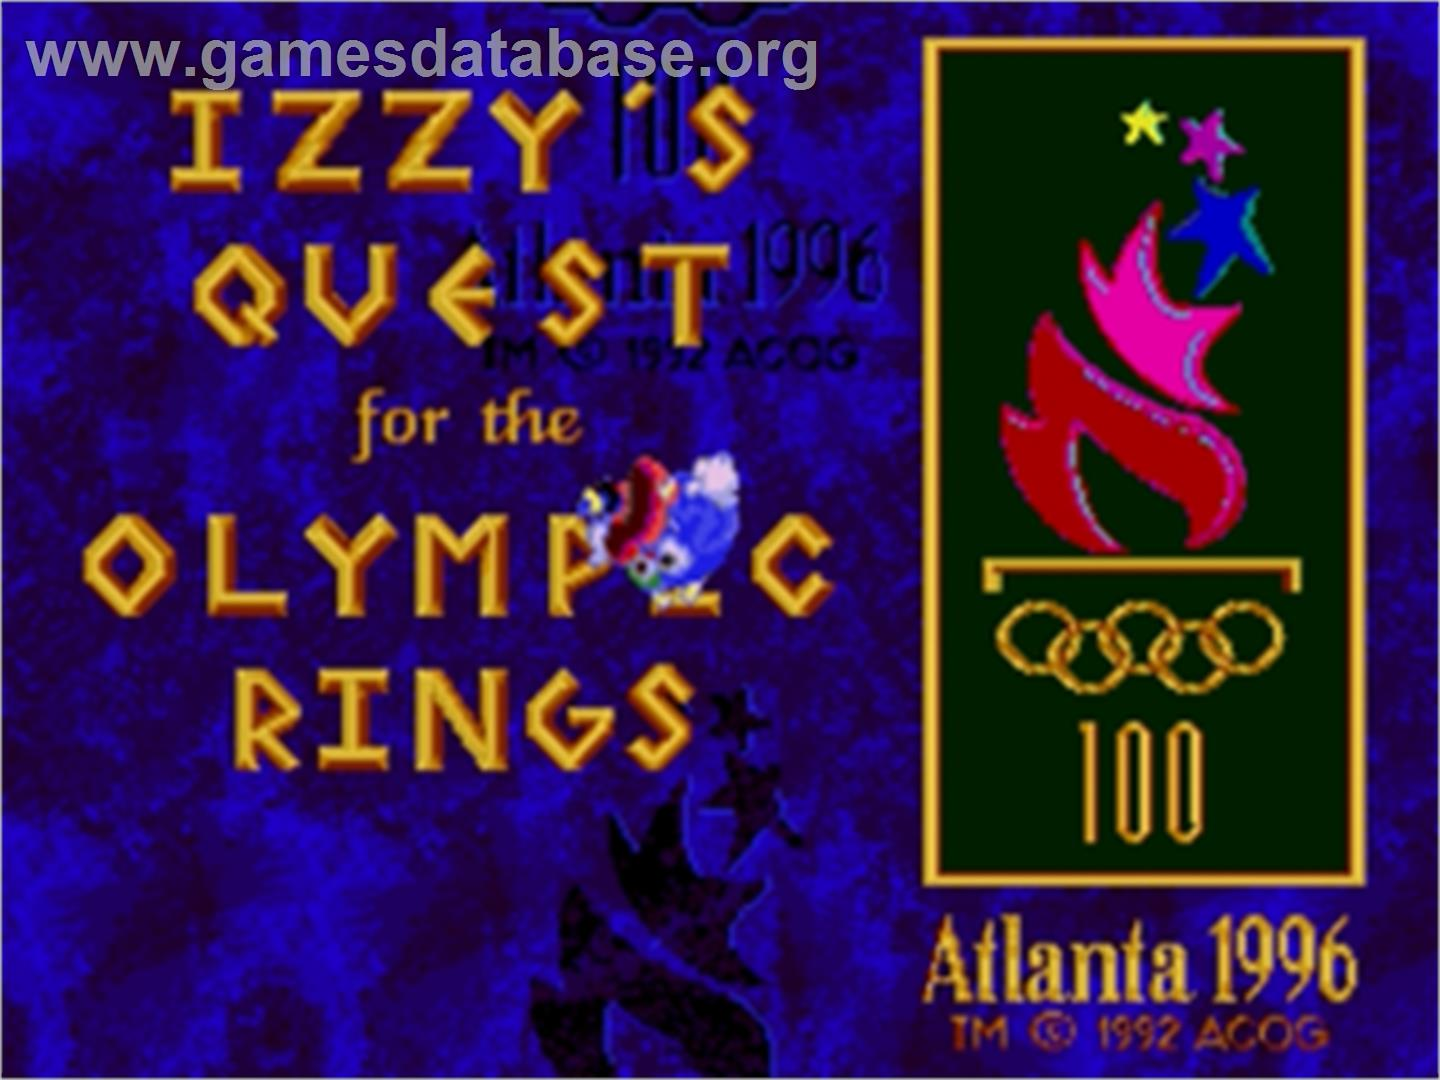 Izzy's Quest for the Olympic Rings - Sega Genesis - Artwork - Title Screen